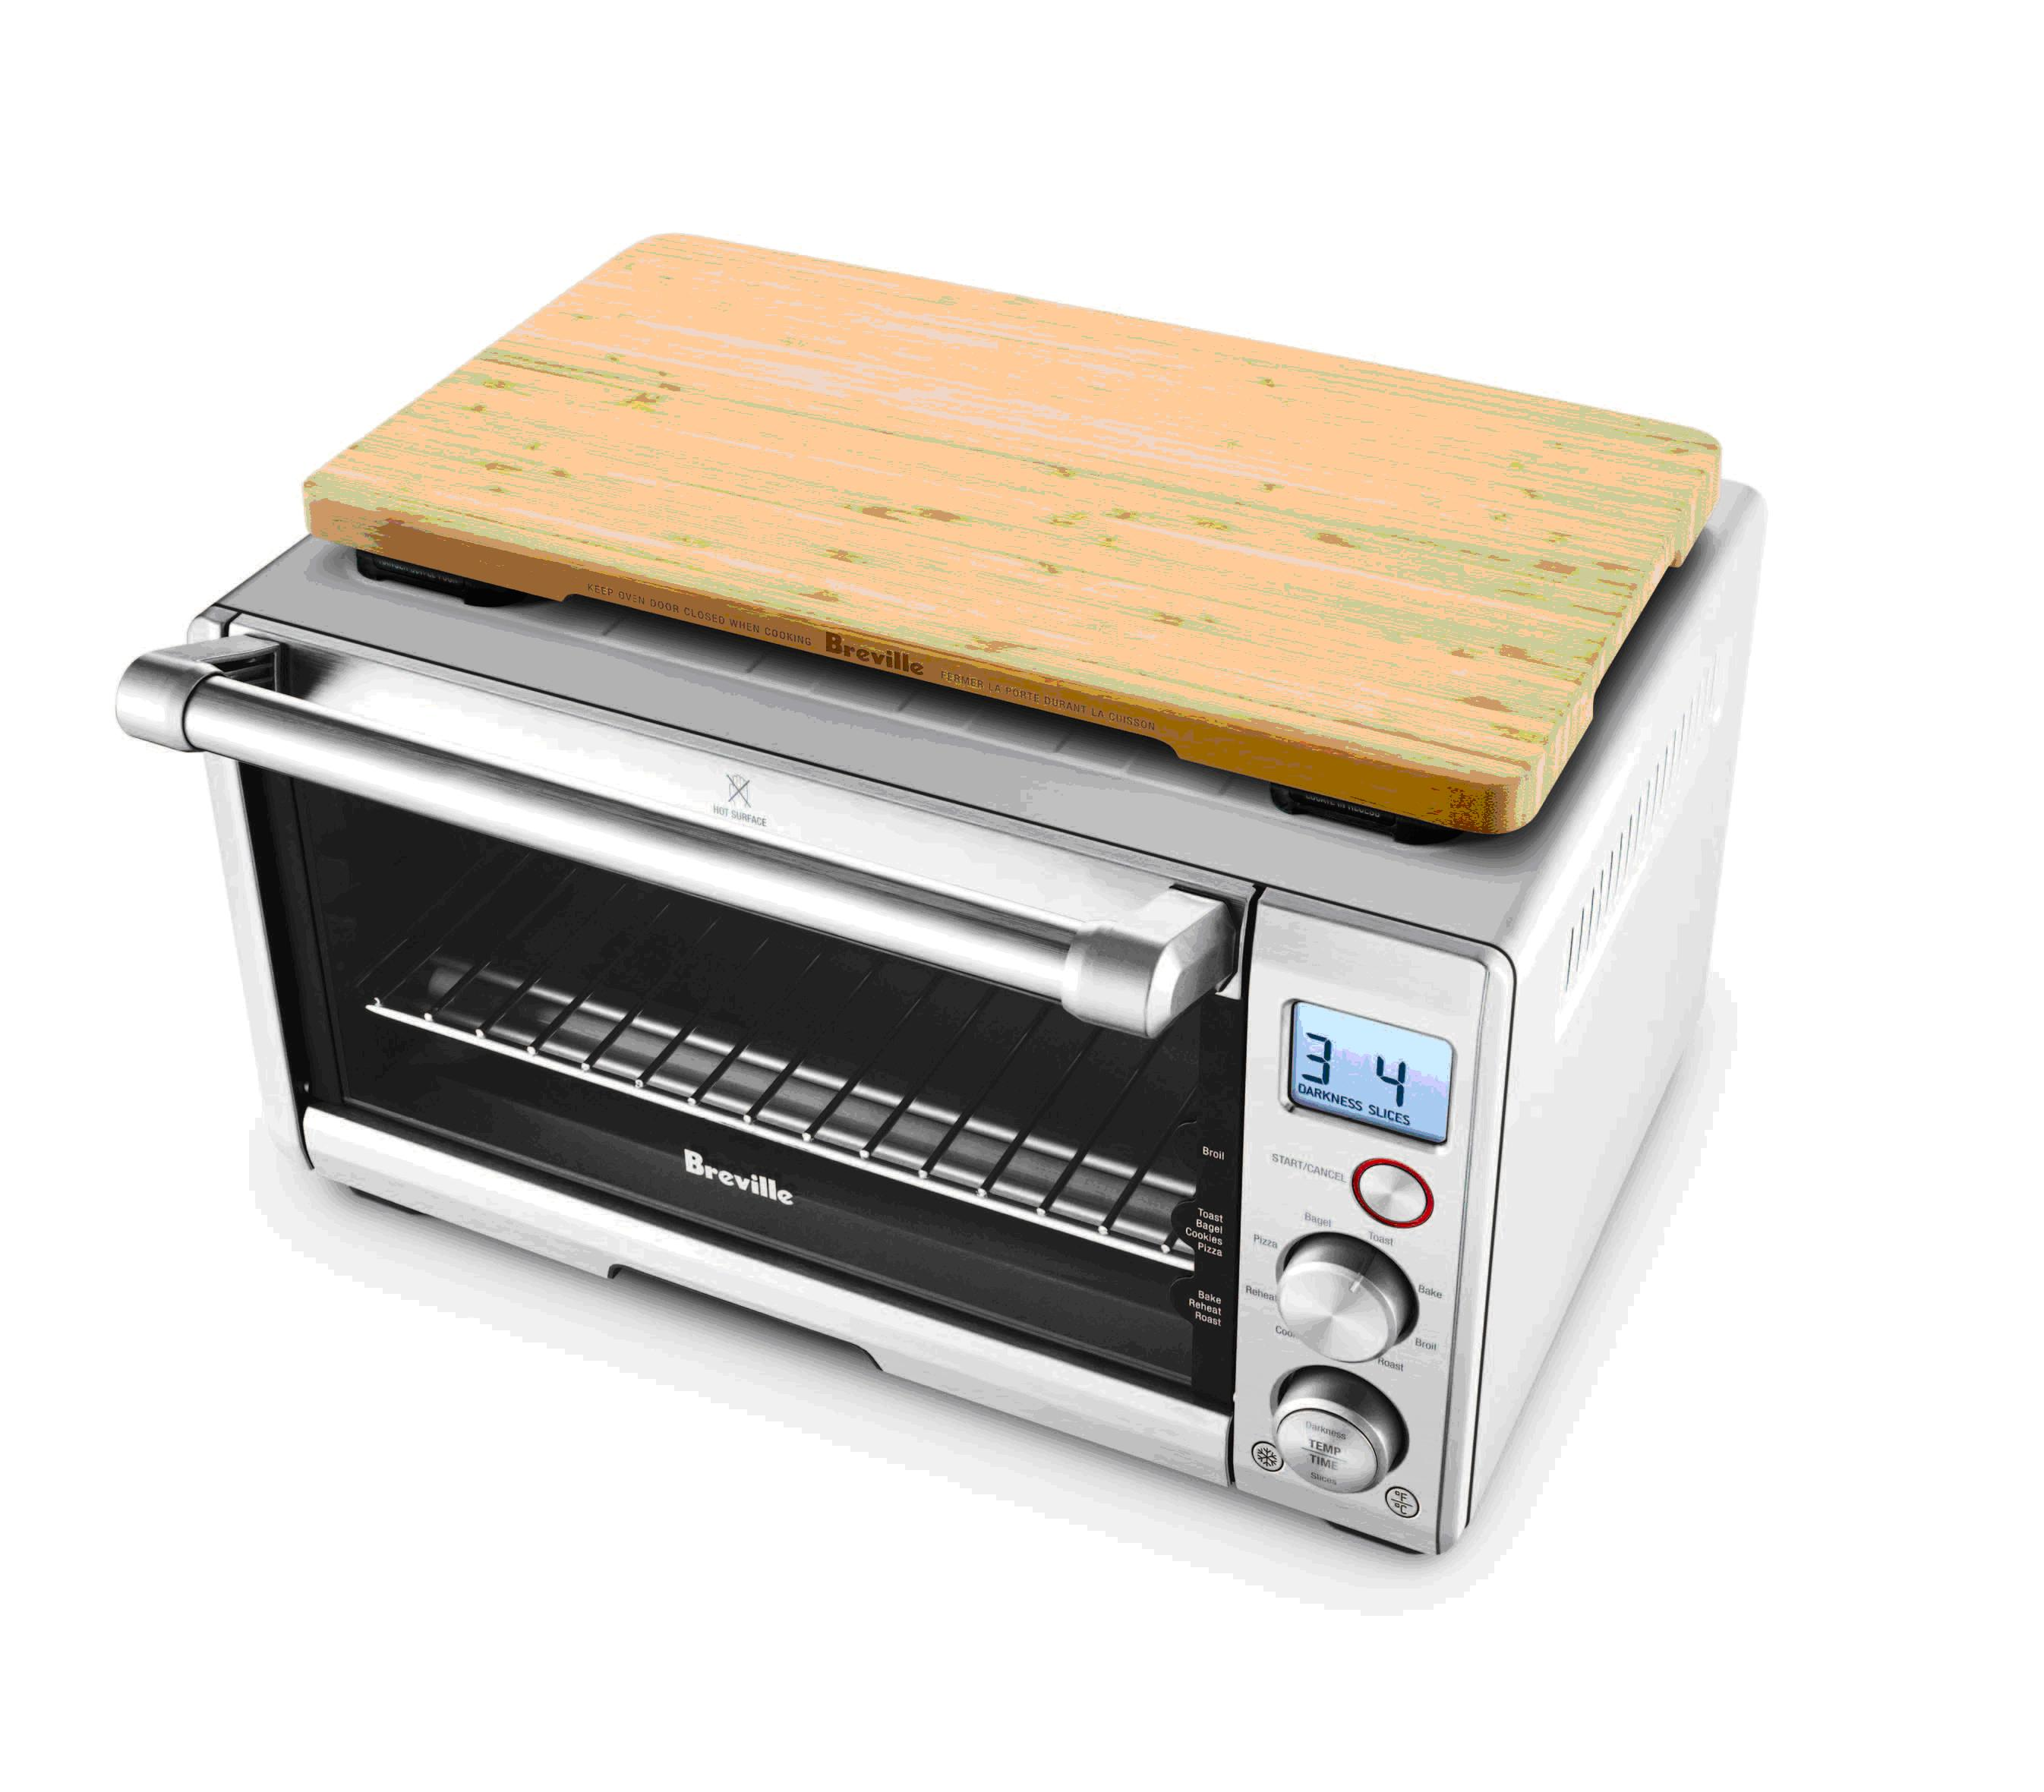 items toaster official food smarssen vacuum smart dishes automatic for and products store sealing perfect household or time ahead saving system acea